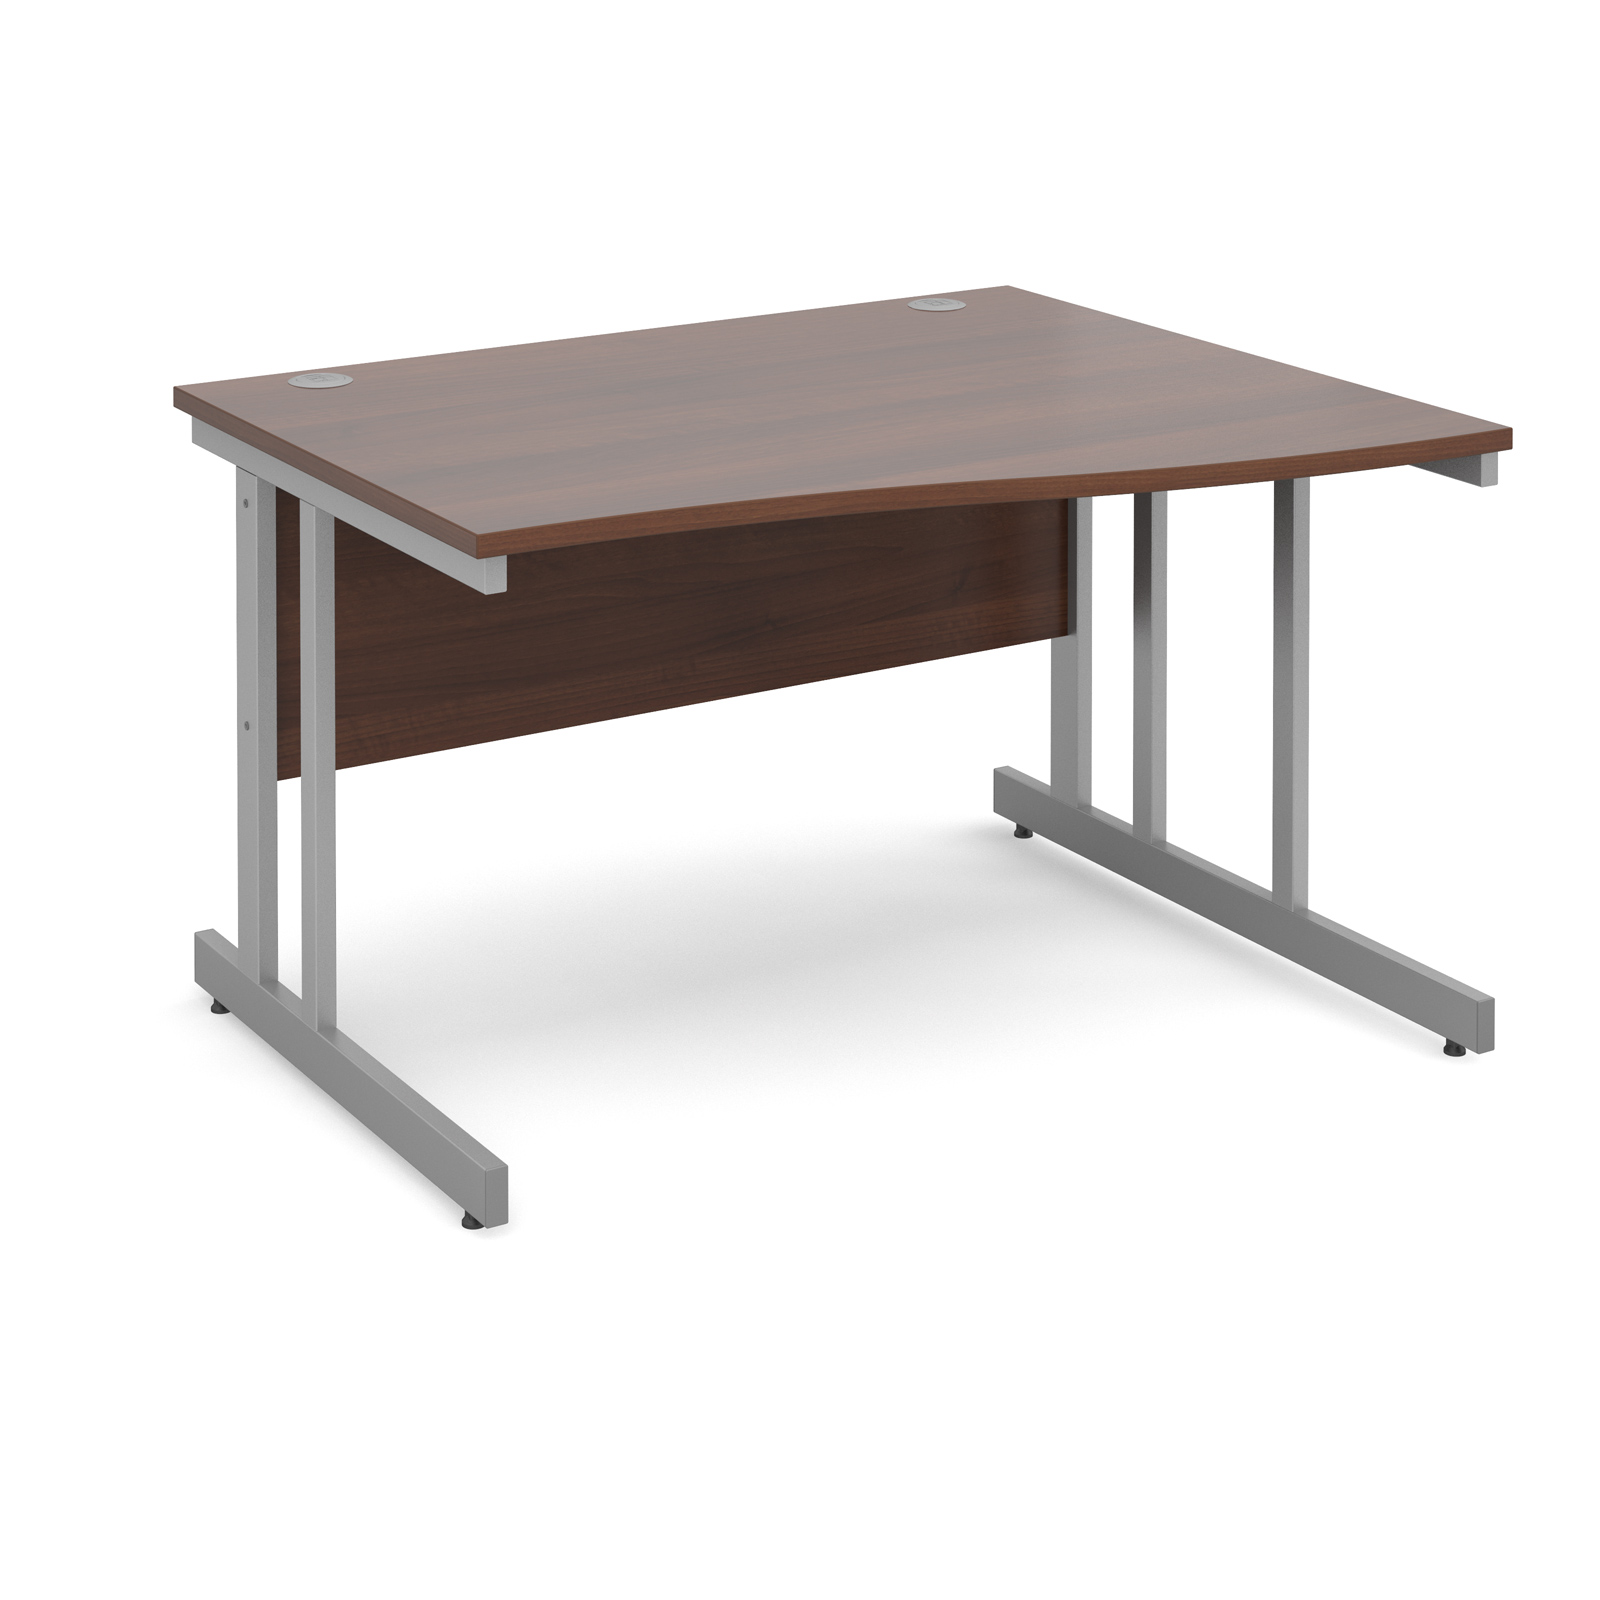 Momento right hand wave desk 1200mm - silver cantilever frame, walnut top